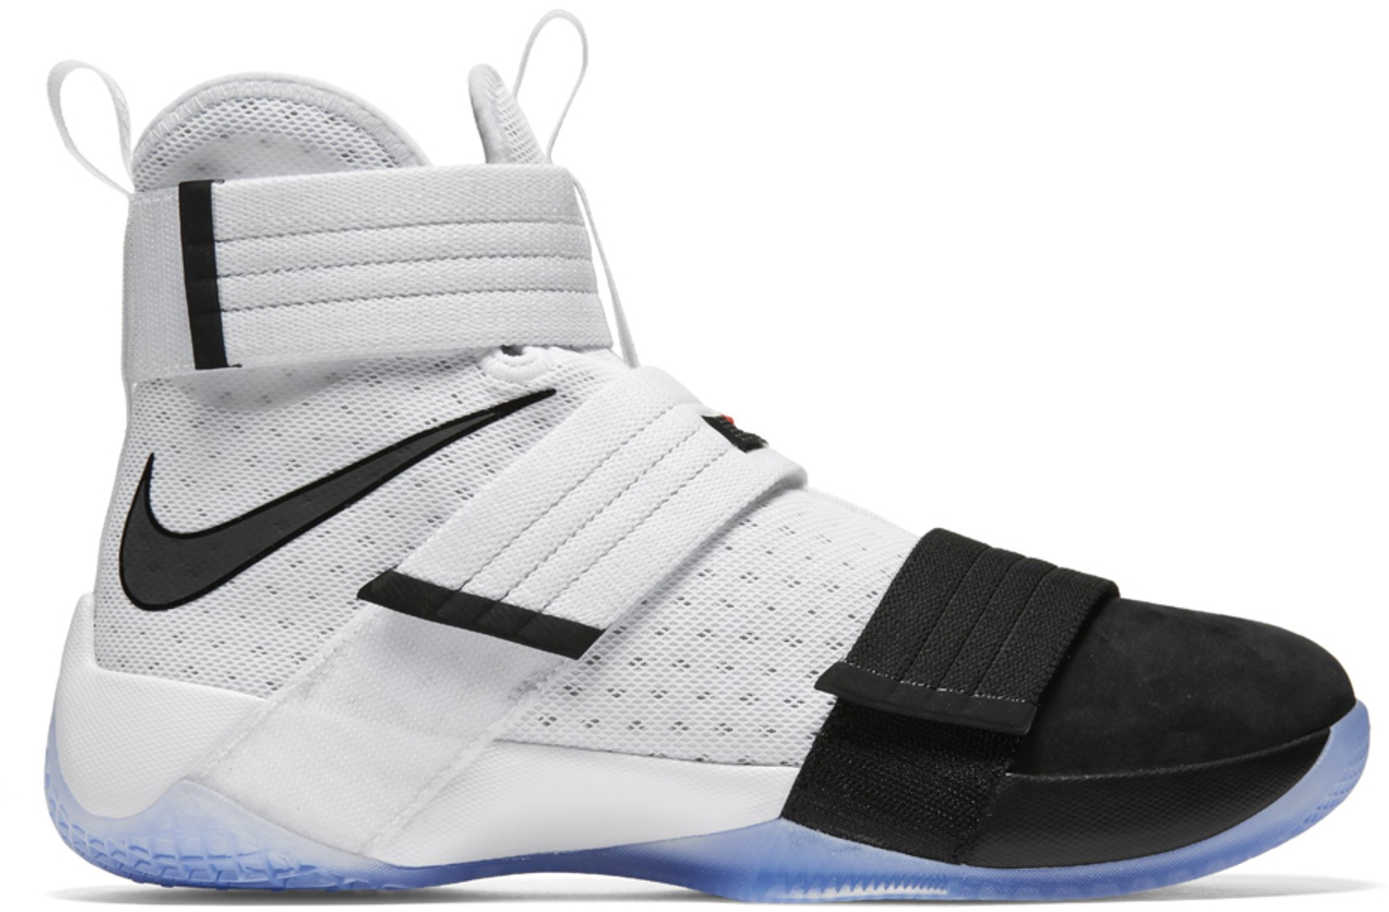 LeBron Zoom Soldier 10 Black Toe